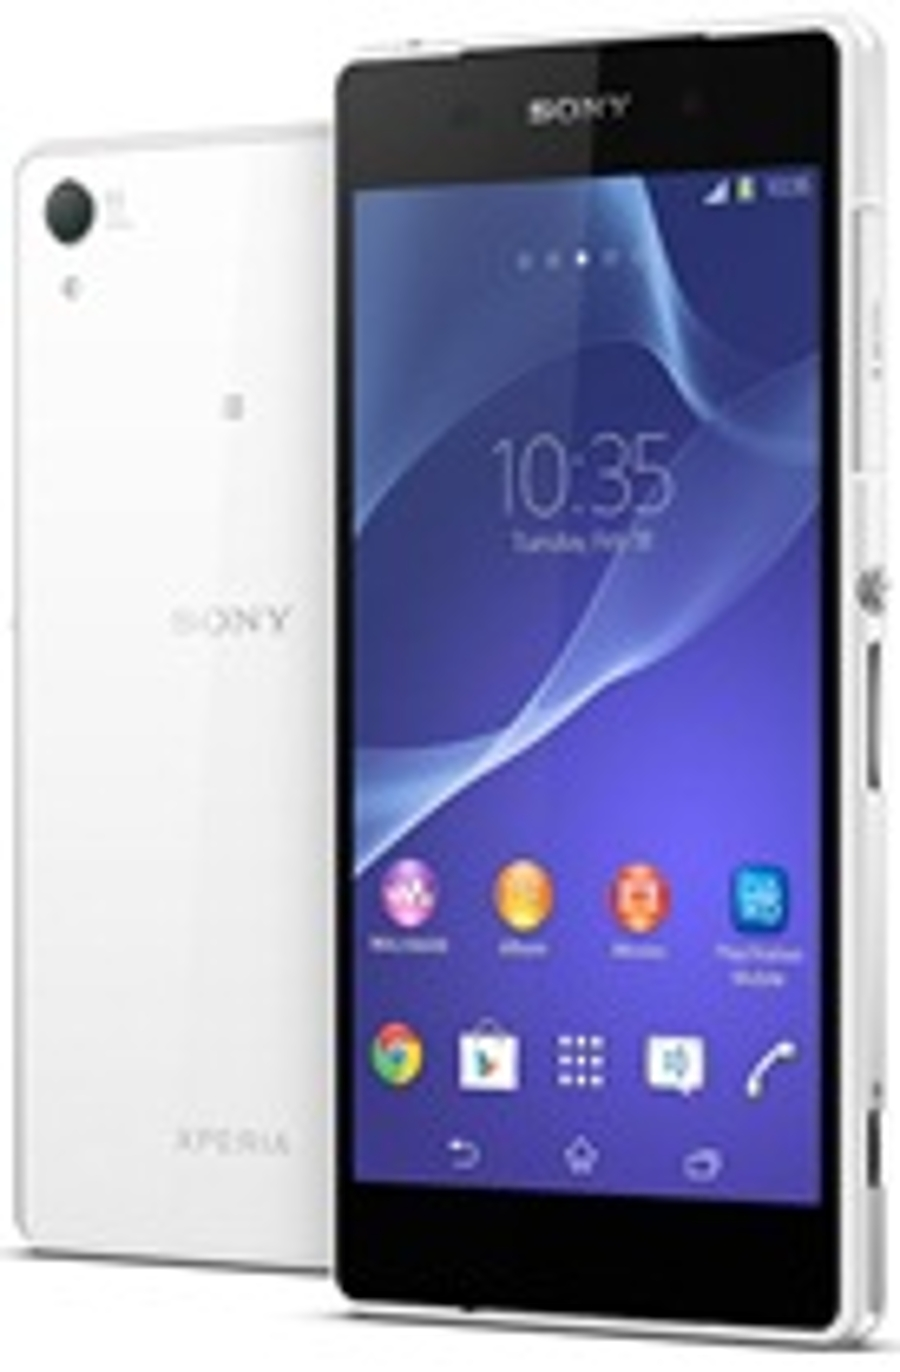 Xperia Z2 ontwerp